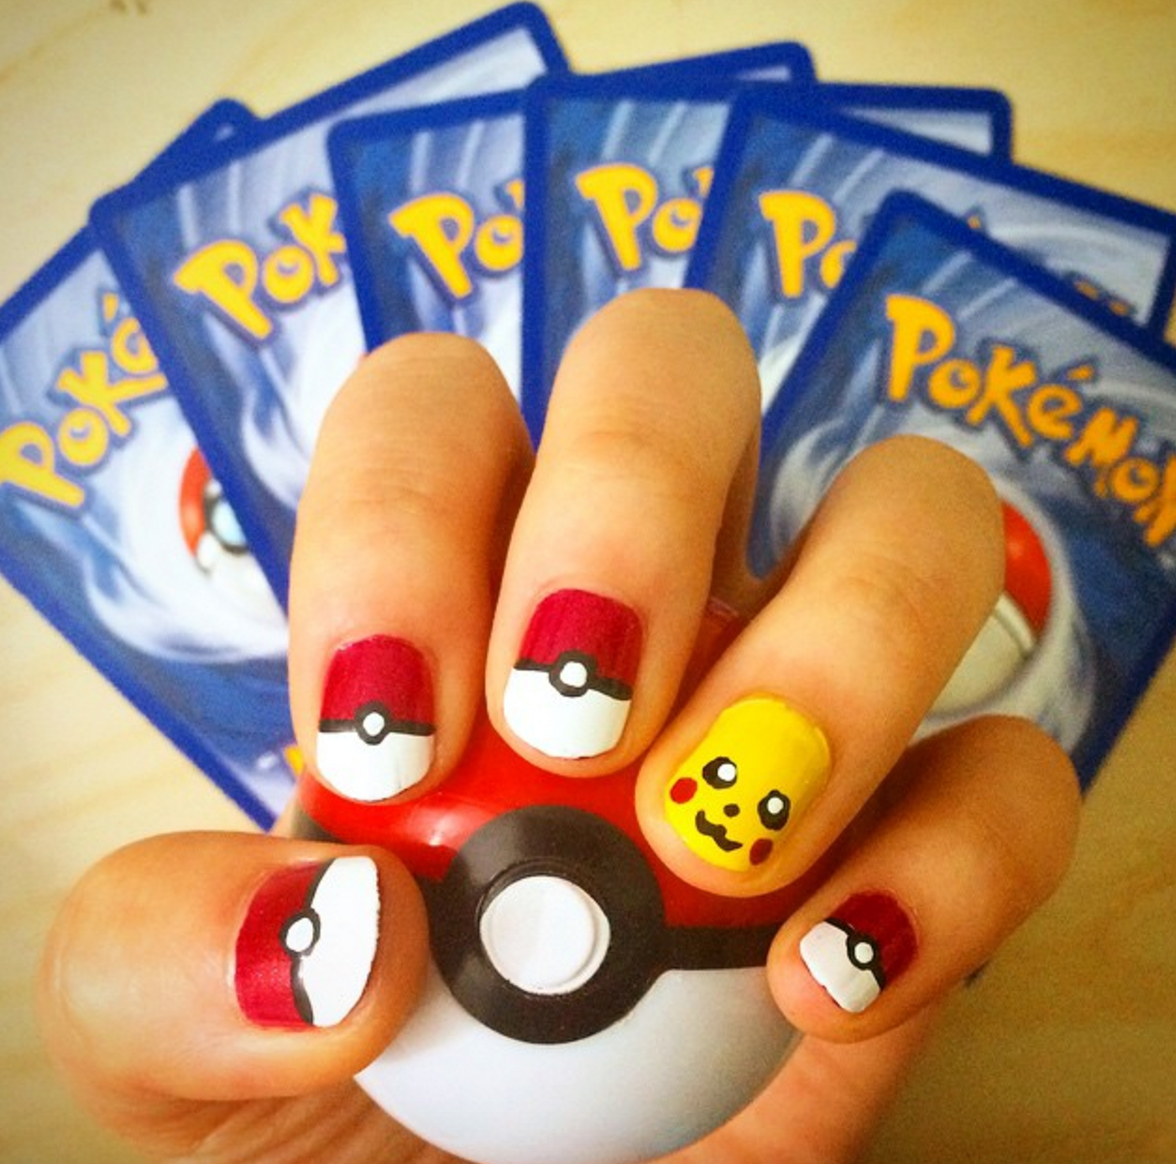 These Pokémon nail art designs make us forget all about wanting to catch 'em all